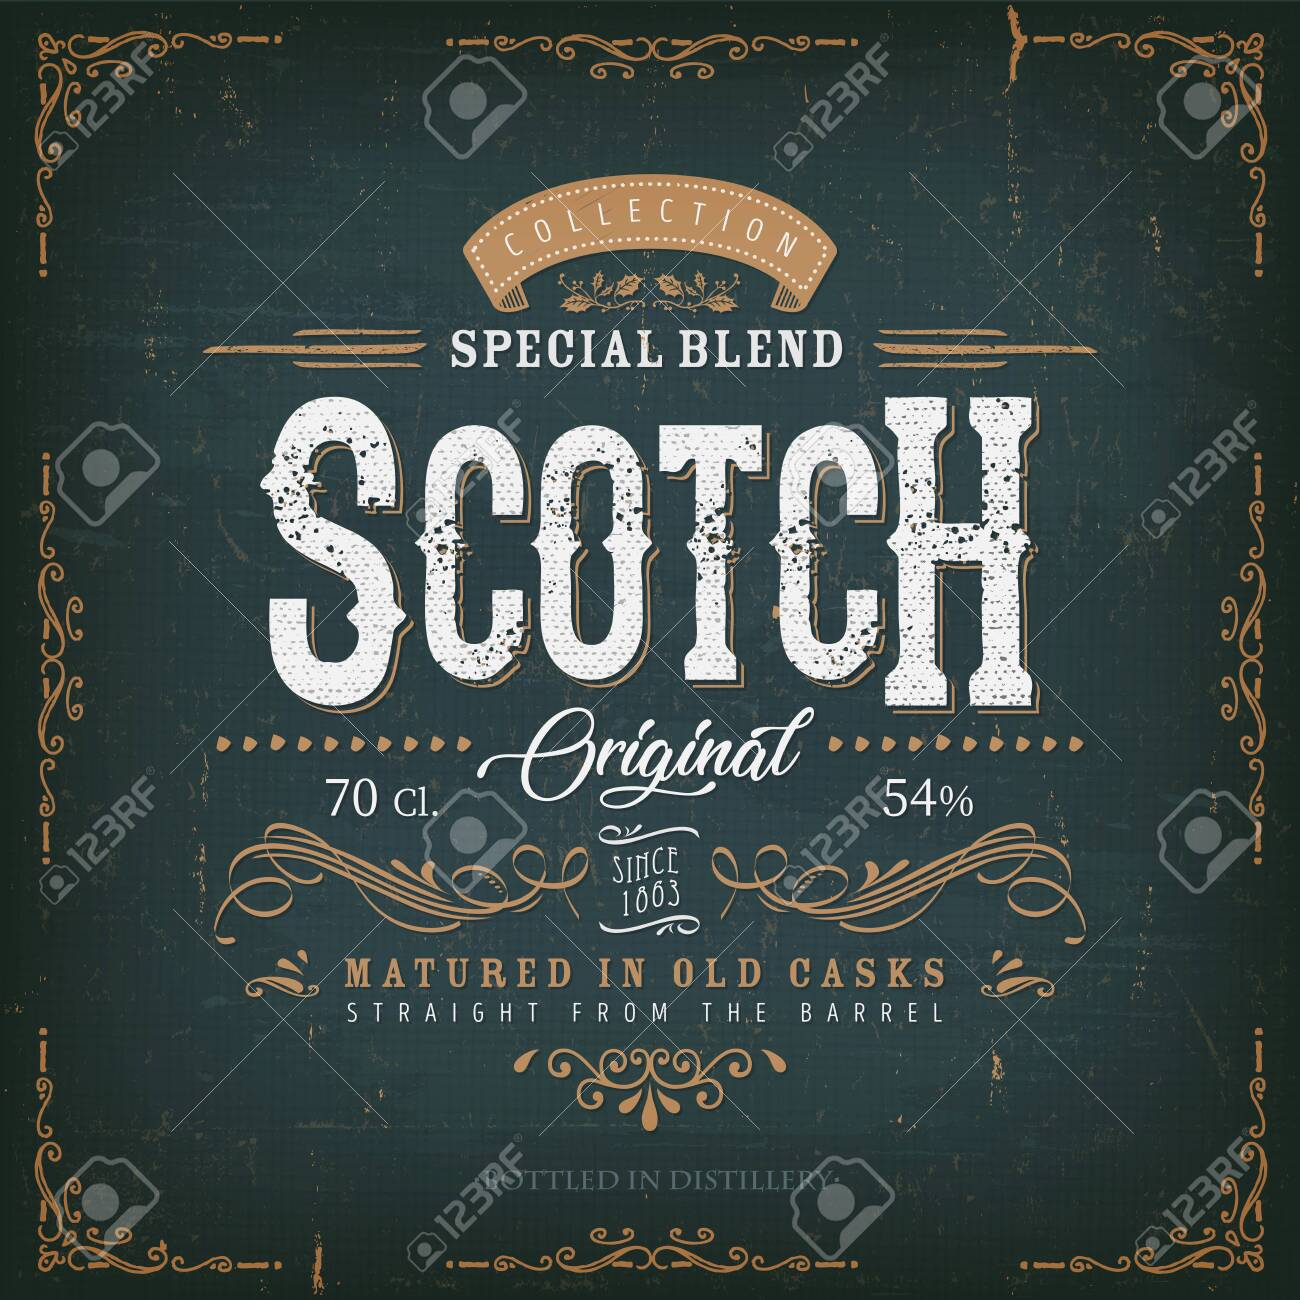 Illustration of a vintage design elegant whisky label, with crafted letterring, specific product mentions, textures and celtic patterns, on blue and gold background - 138430319